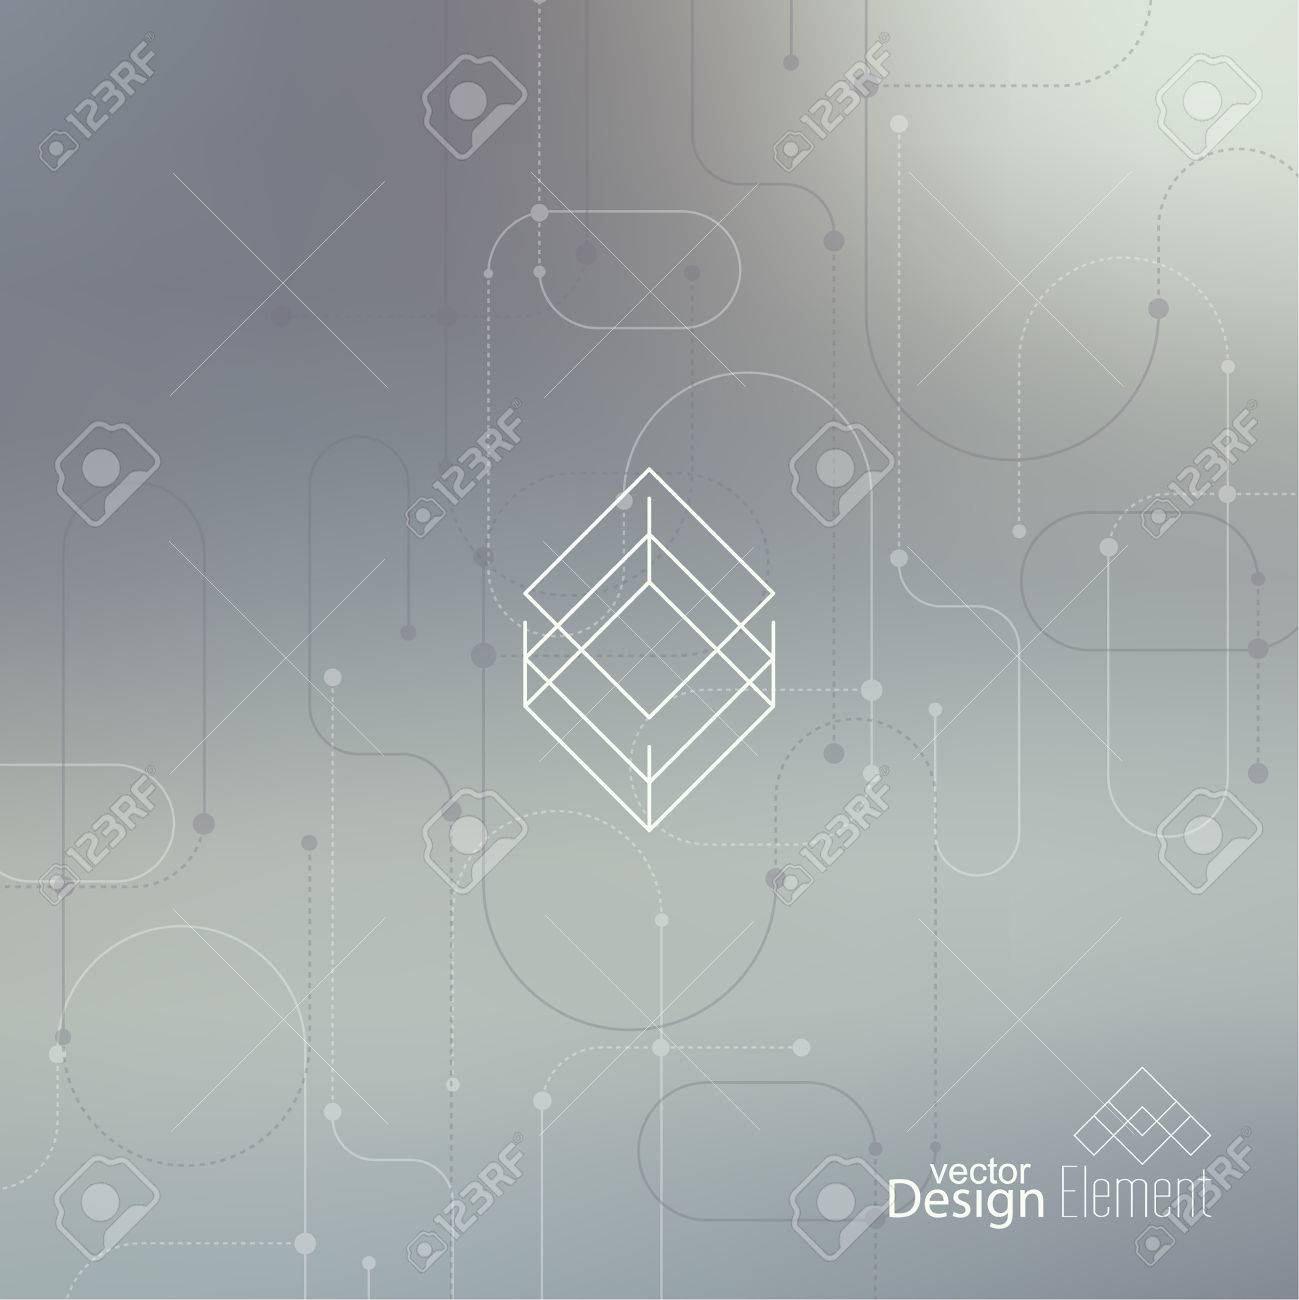 Abstract neat Blurred Background. Hipster Geometric shape, line and dot. Modern Signs, Label. For cover book, brochure, flyer, poster, magazine, cd, website, app mobile, annual report, T-shirt, logo - 41716798